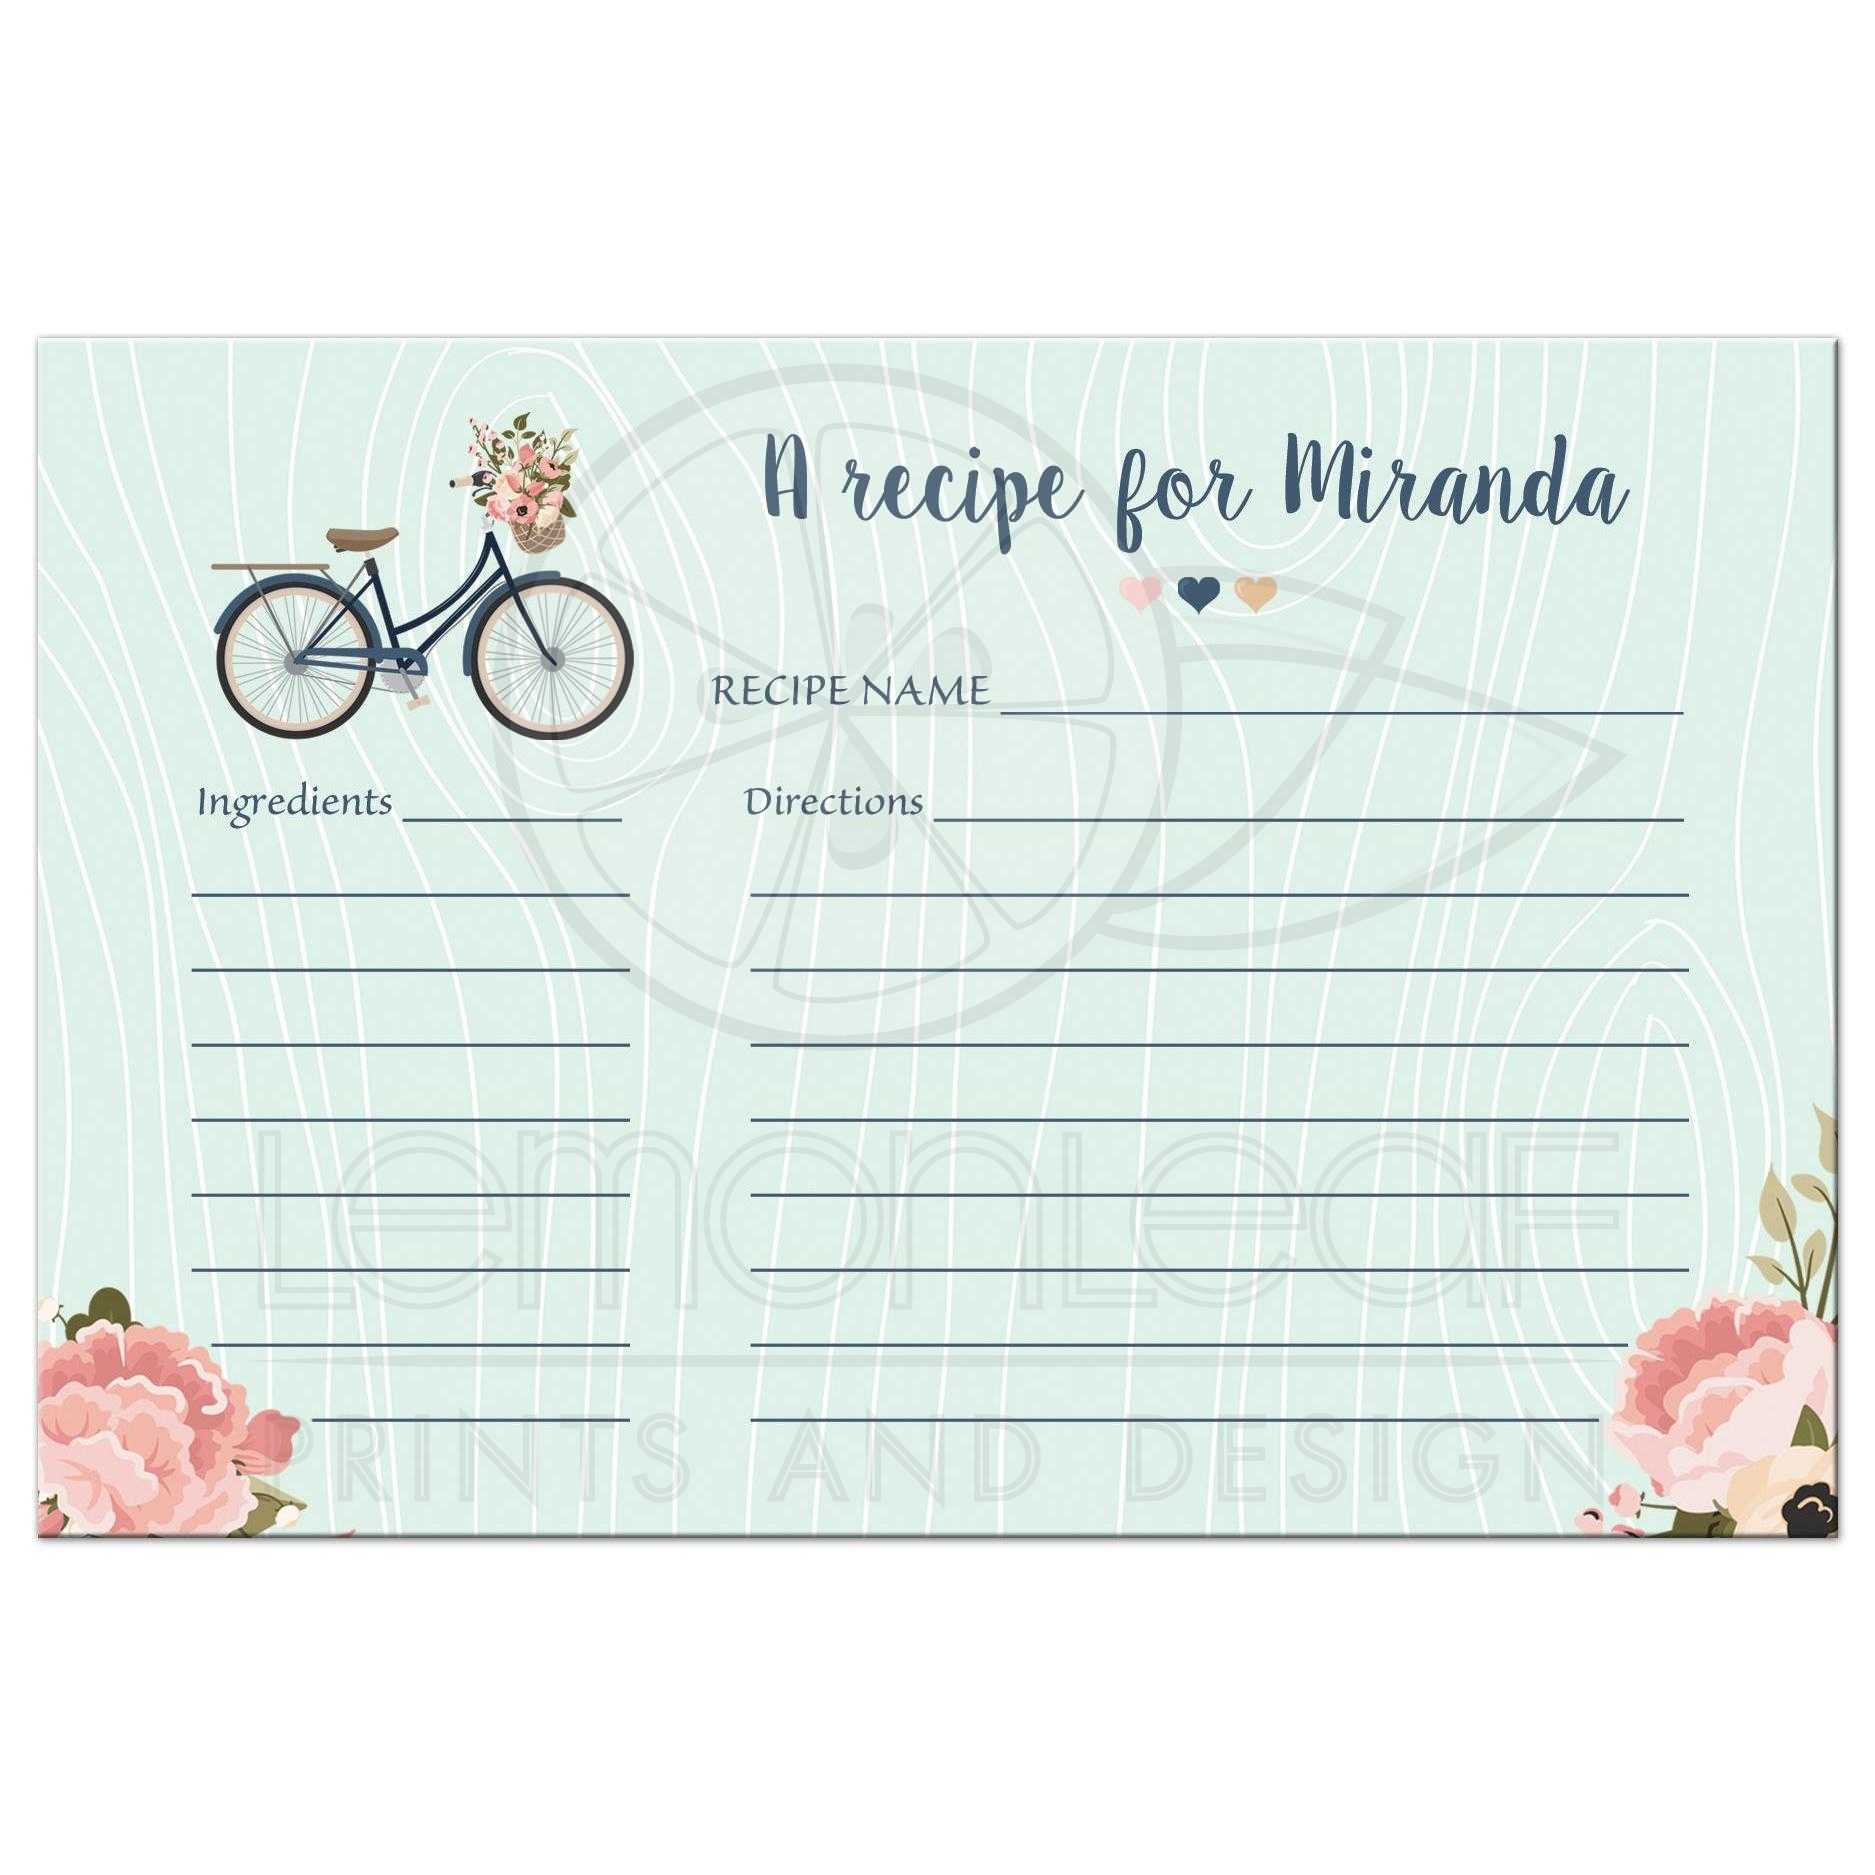 Bridal shower recipe card blush and navy floral bicycle floral bike bridal shower recipe card filmwisefo